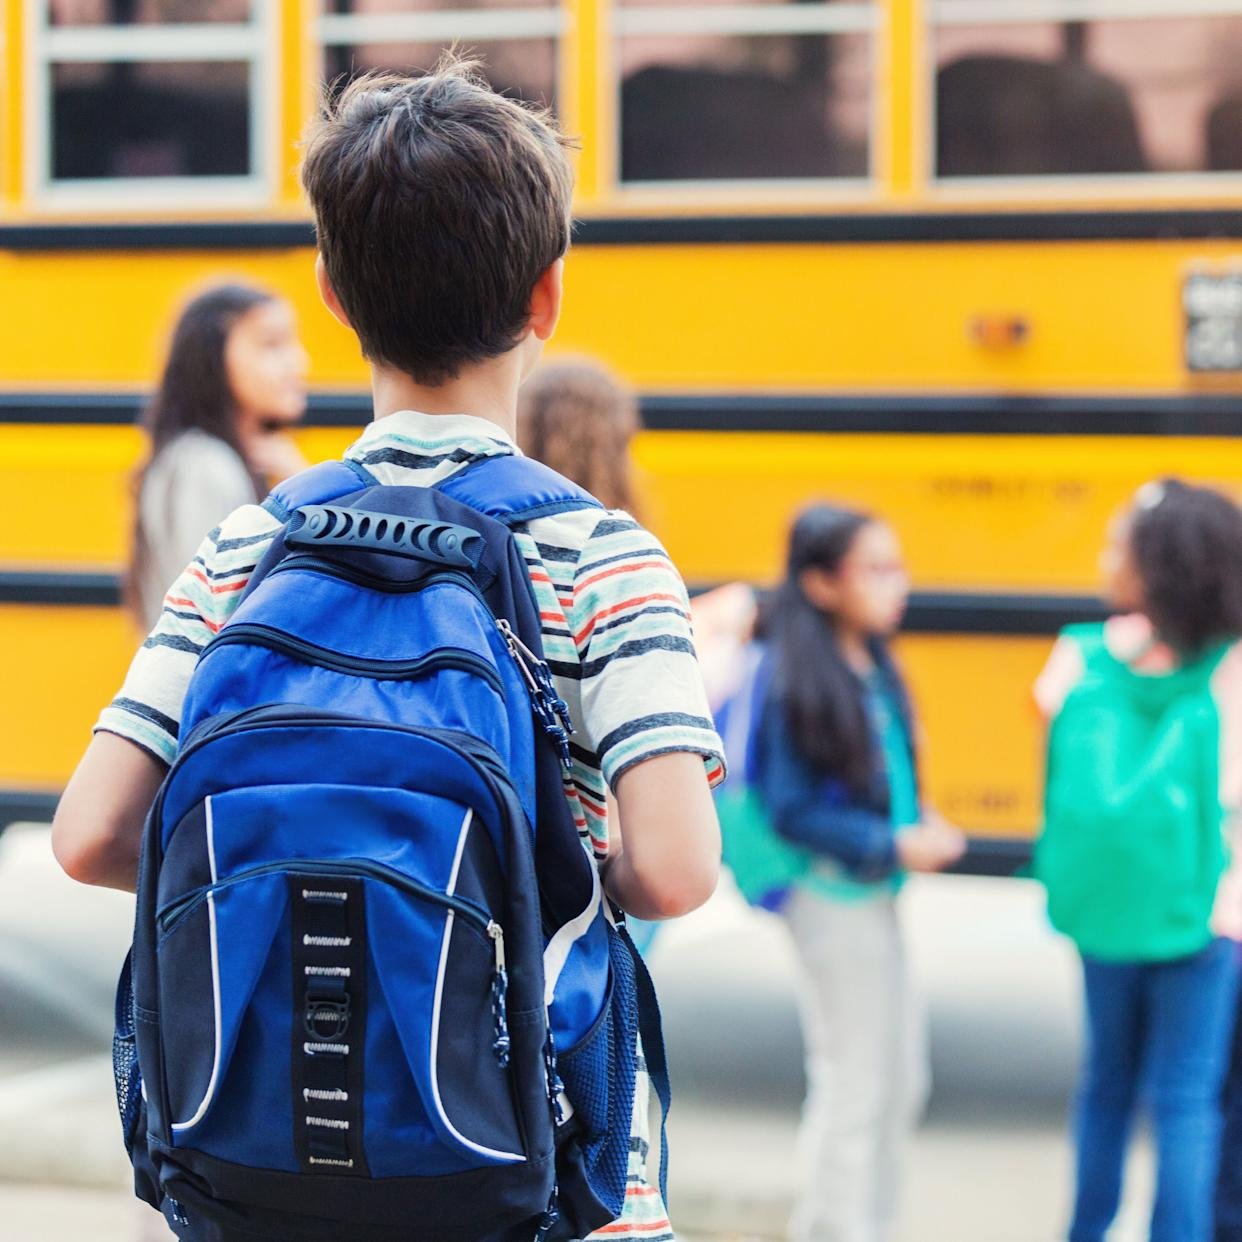 Public school students in Florida must receive at least five hours of mental health classes each year until the 12th grade, according to a new rule. (Photo: asiseeit via Getty Images)